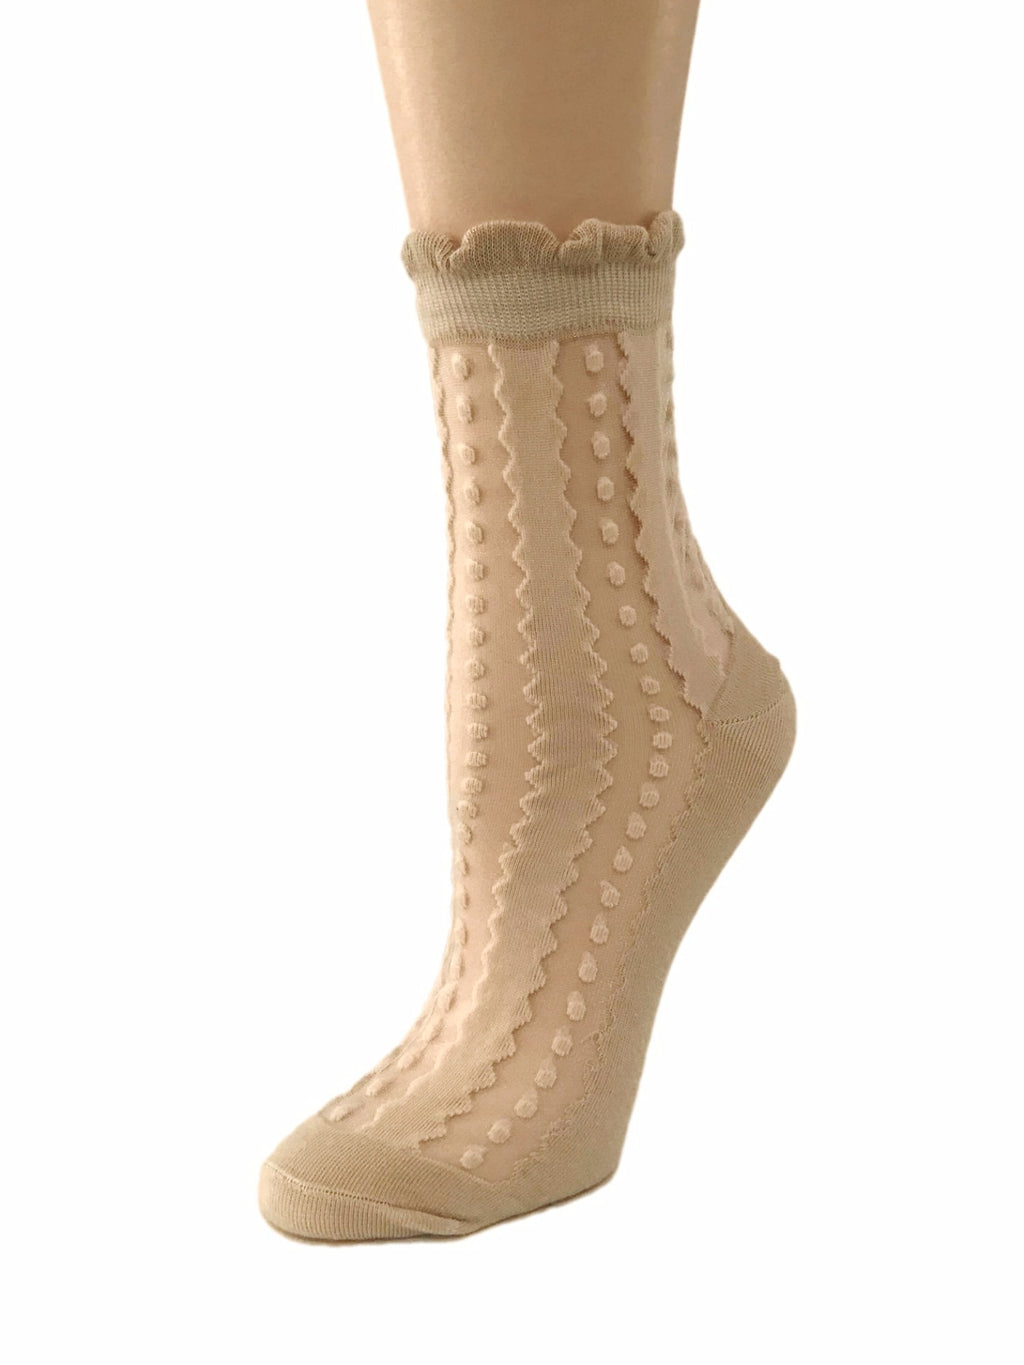 Dotty Beige Sheer Socks - Global Trendz Fashion®